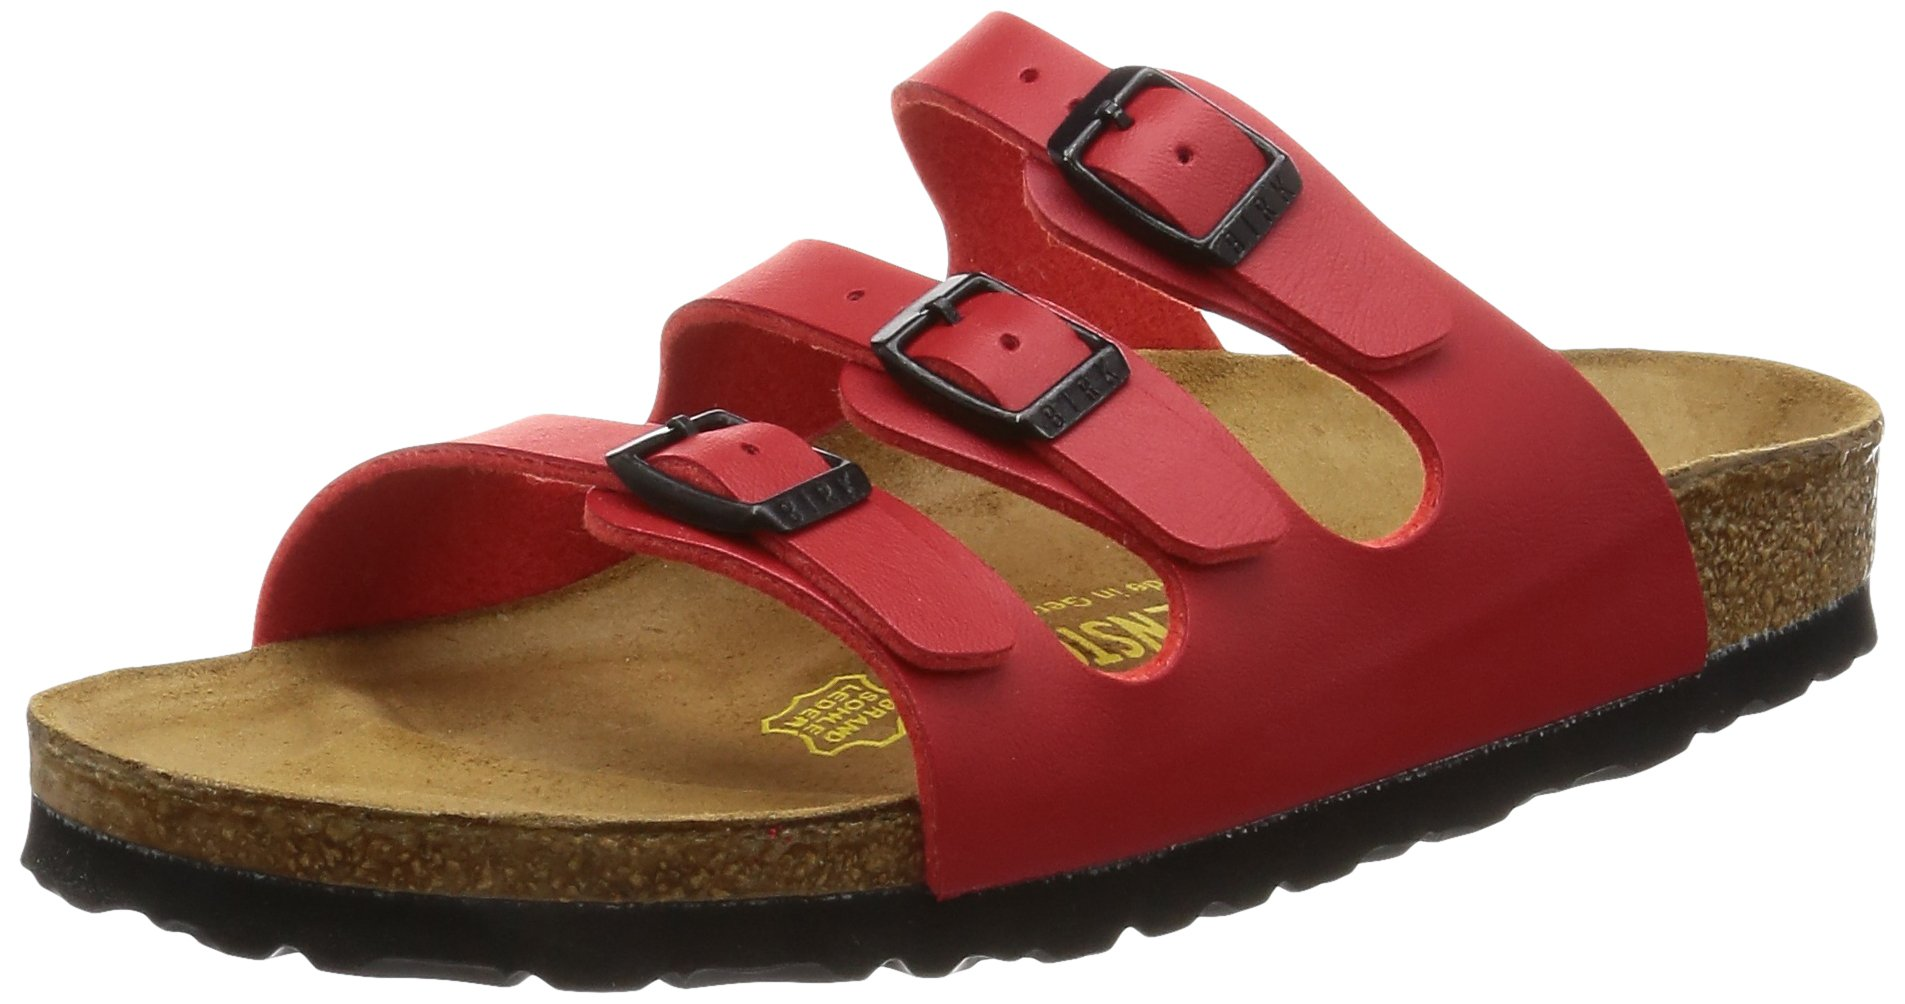 Birkenstock womens Florida in Cherry from Birko-Flor Sandals 36.0 EU N by Birkenstock